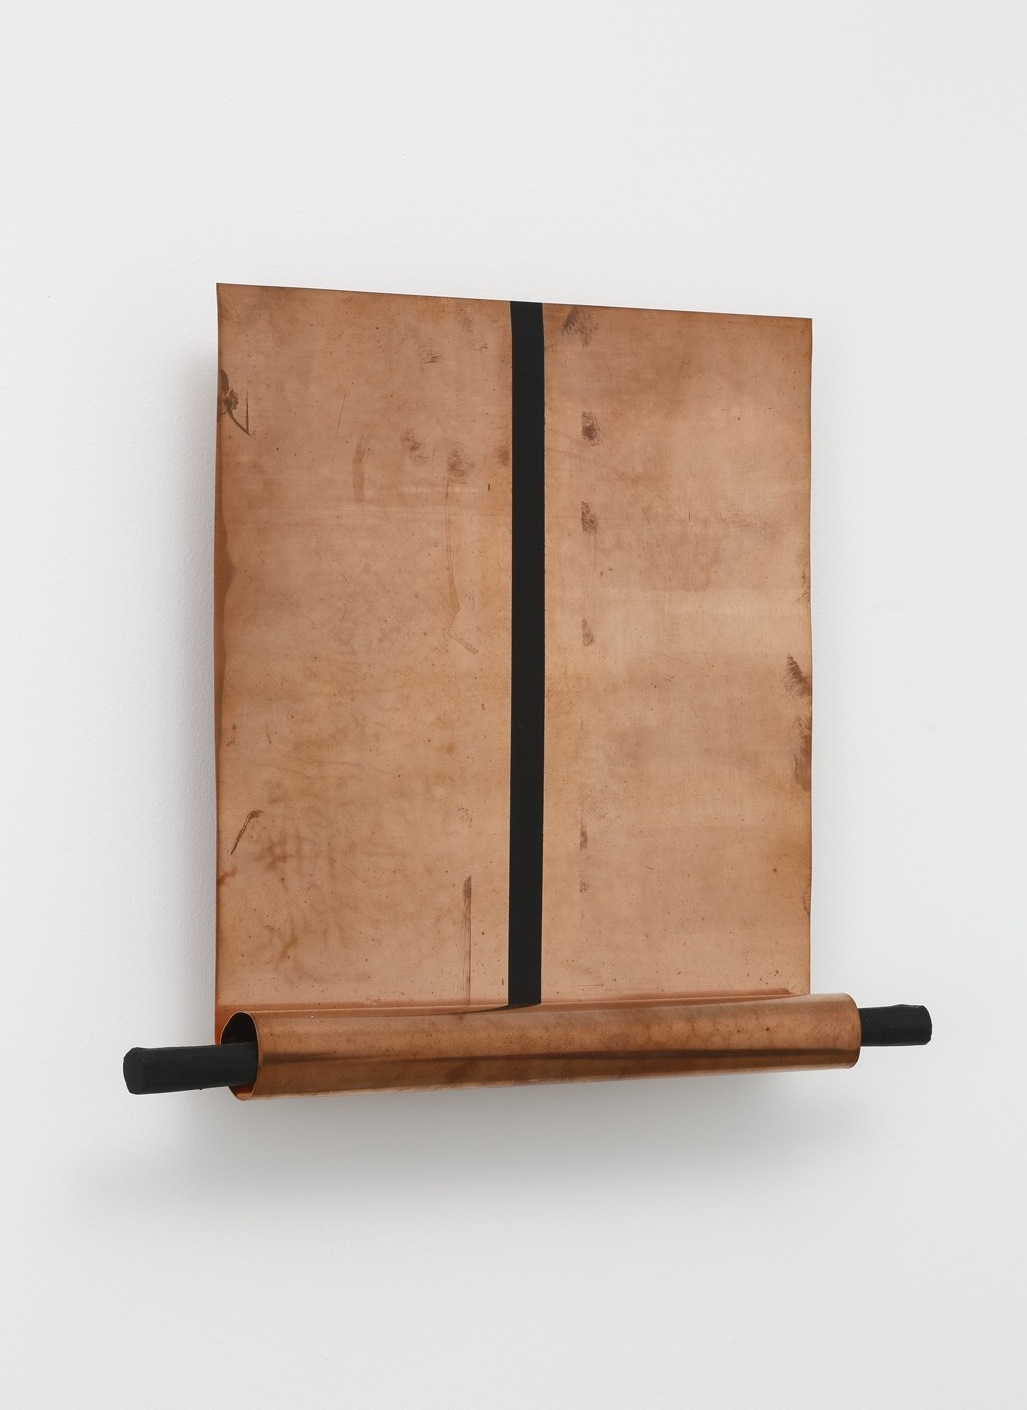 Body of Scenery , 2004 体景 ( taikei ) Copper, paint, wood 13 1/4 x 15 3/8 x 3 1/8 inches  33.7 x 39.1 x 7.9 centimeters